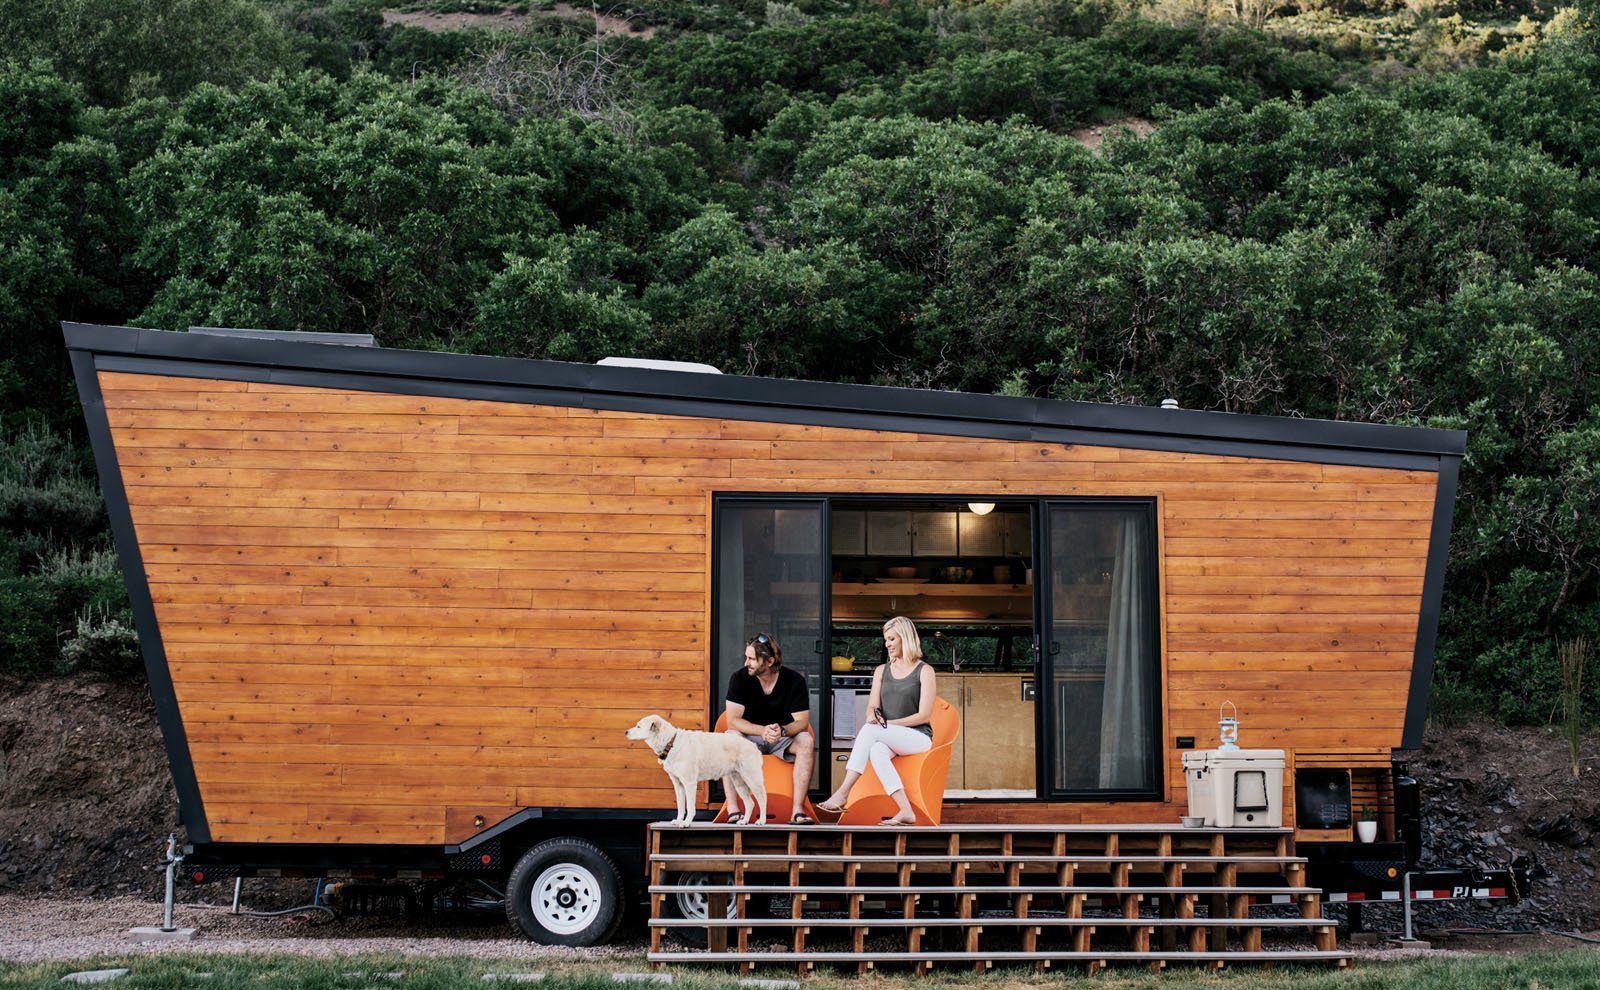 How to build a tiny diy trailer on a budget dwell for How to build a home on a budget